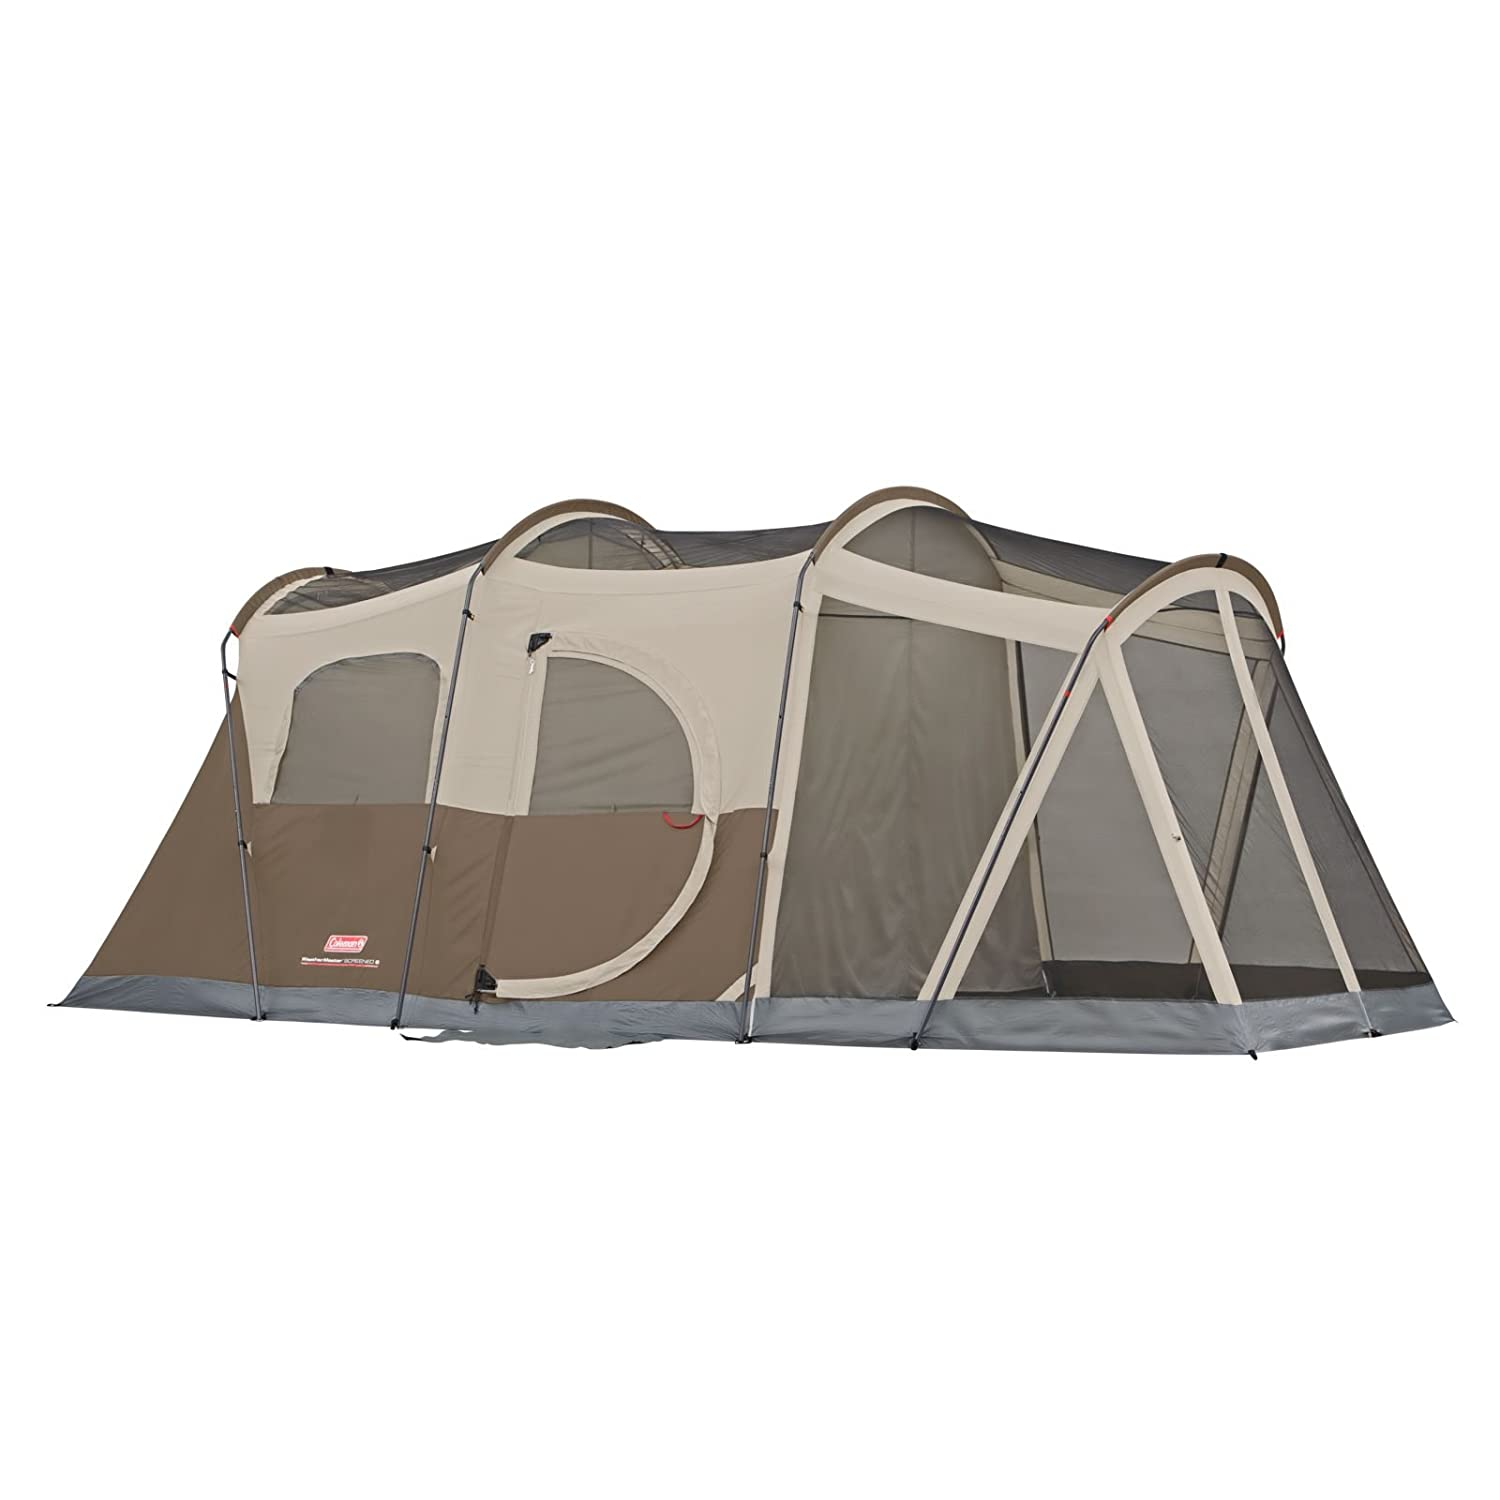 Amazon.com  Coleman WeatherMaster 6-Person Tent with Screen Room  Sports u0026 Outdoors  sc 1 st  Amazon.com & Amazon.com : Coleman WeatherMaster 6-Person Tent with Screen Room ...